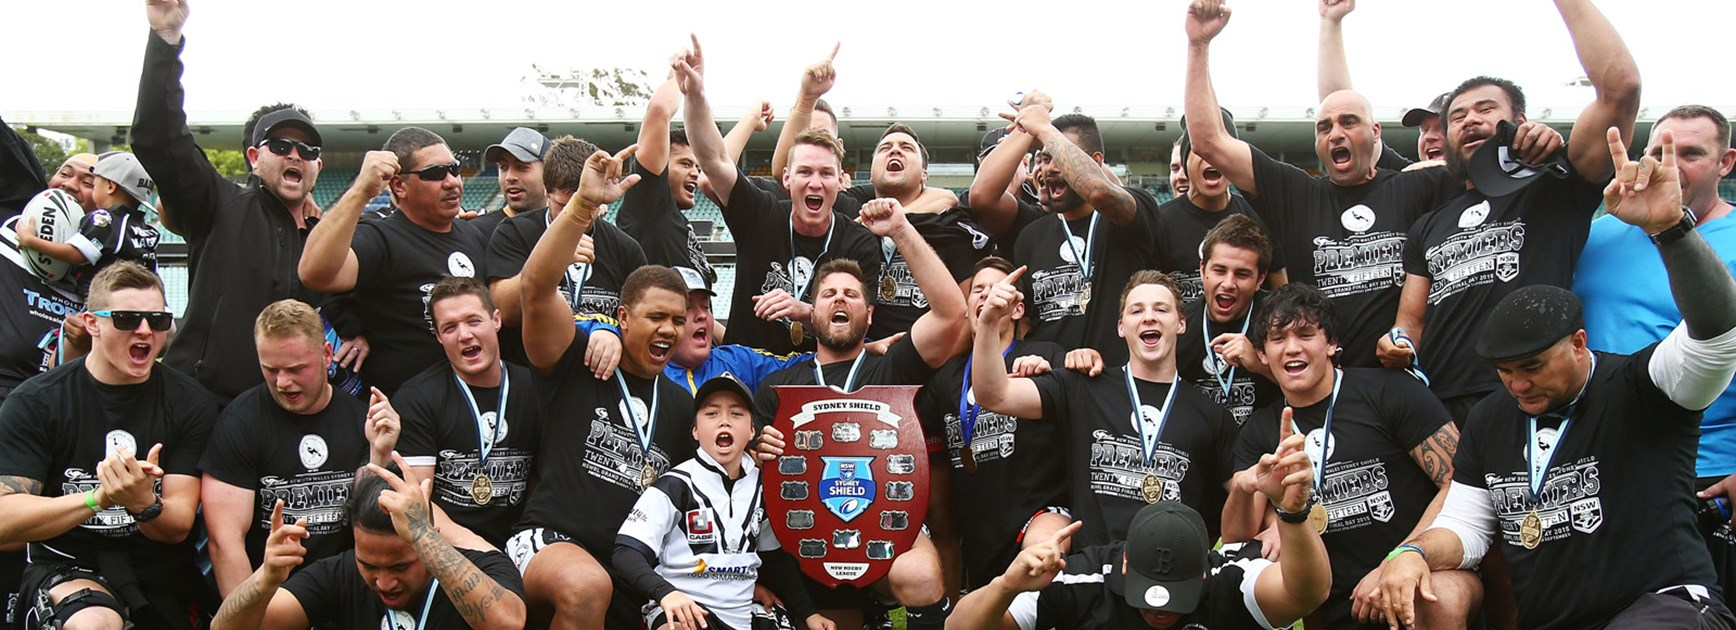 Cook Islands coach Alex Chan (bottom right) coached the Wentworthville Magpies to the 2015 Sydney Shield title.